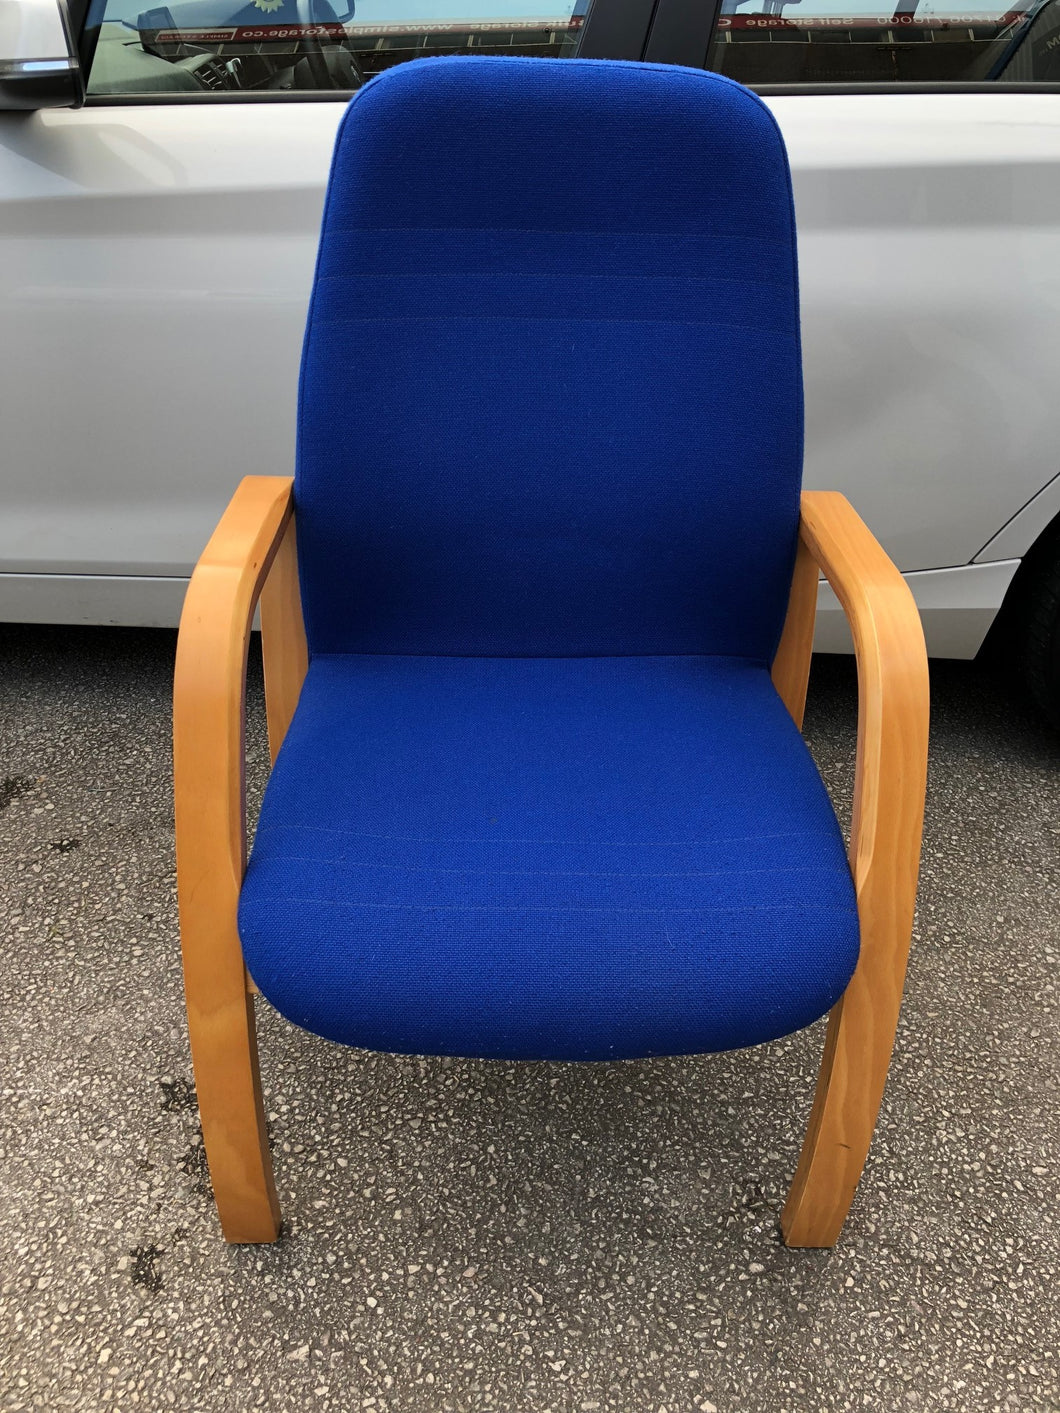 Blue Cloth Reception/Meeting Chair - Flogit2us.com